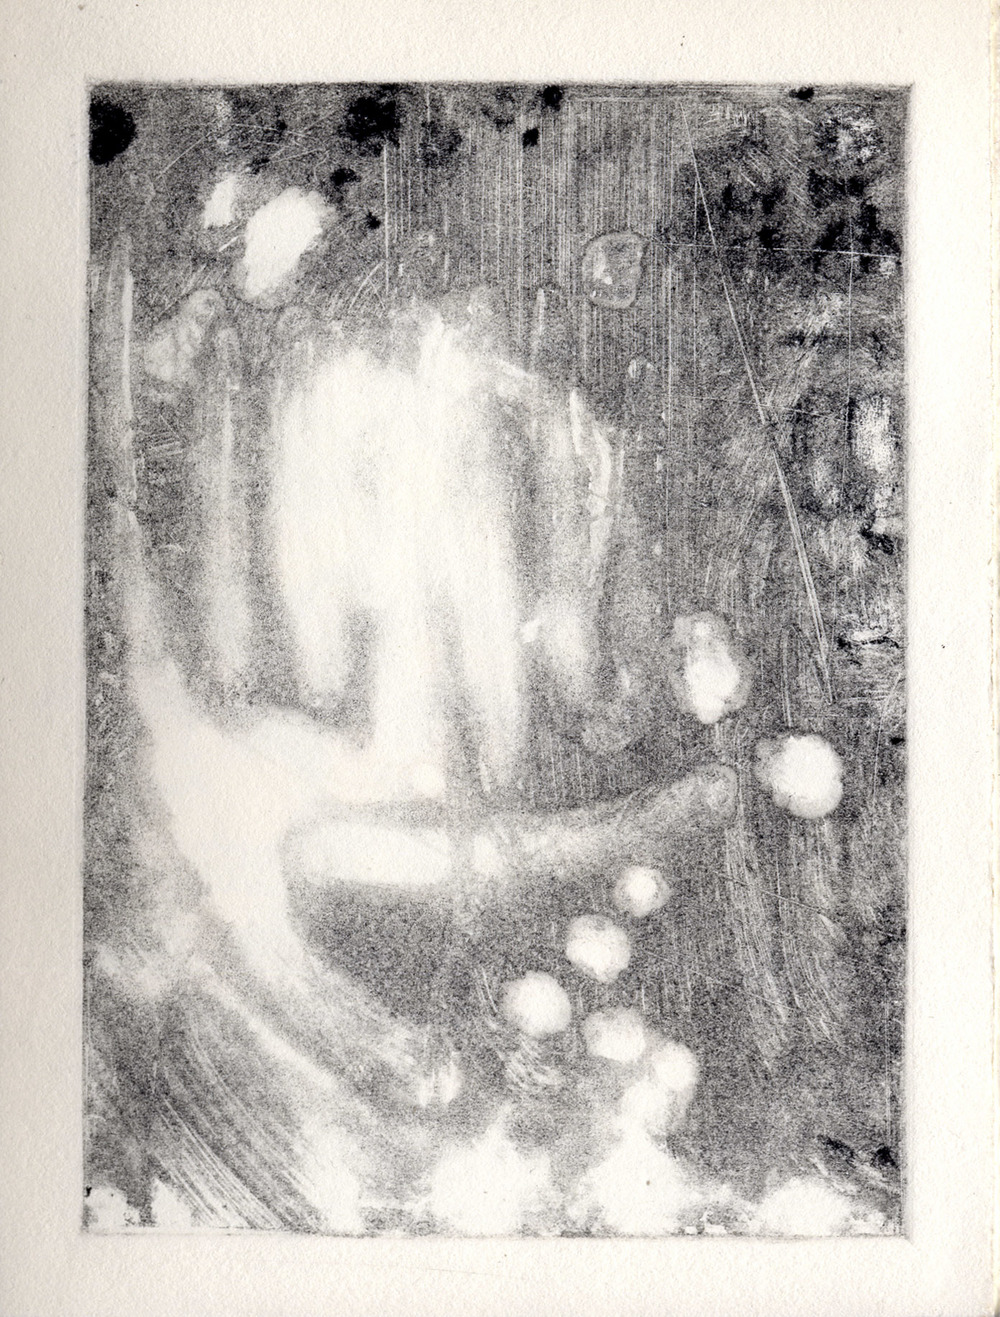 All the Little Live Things, page 9 monotype, etching ink on Rives BFK Lightweight